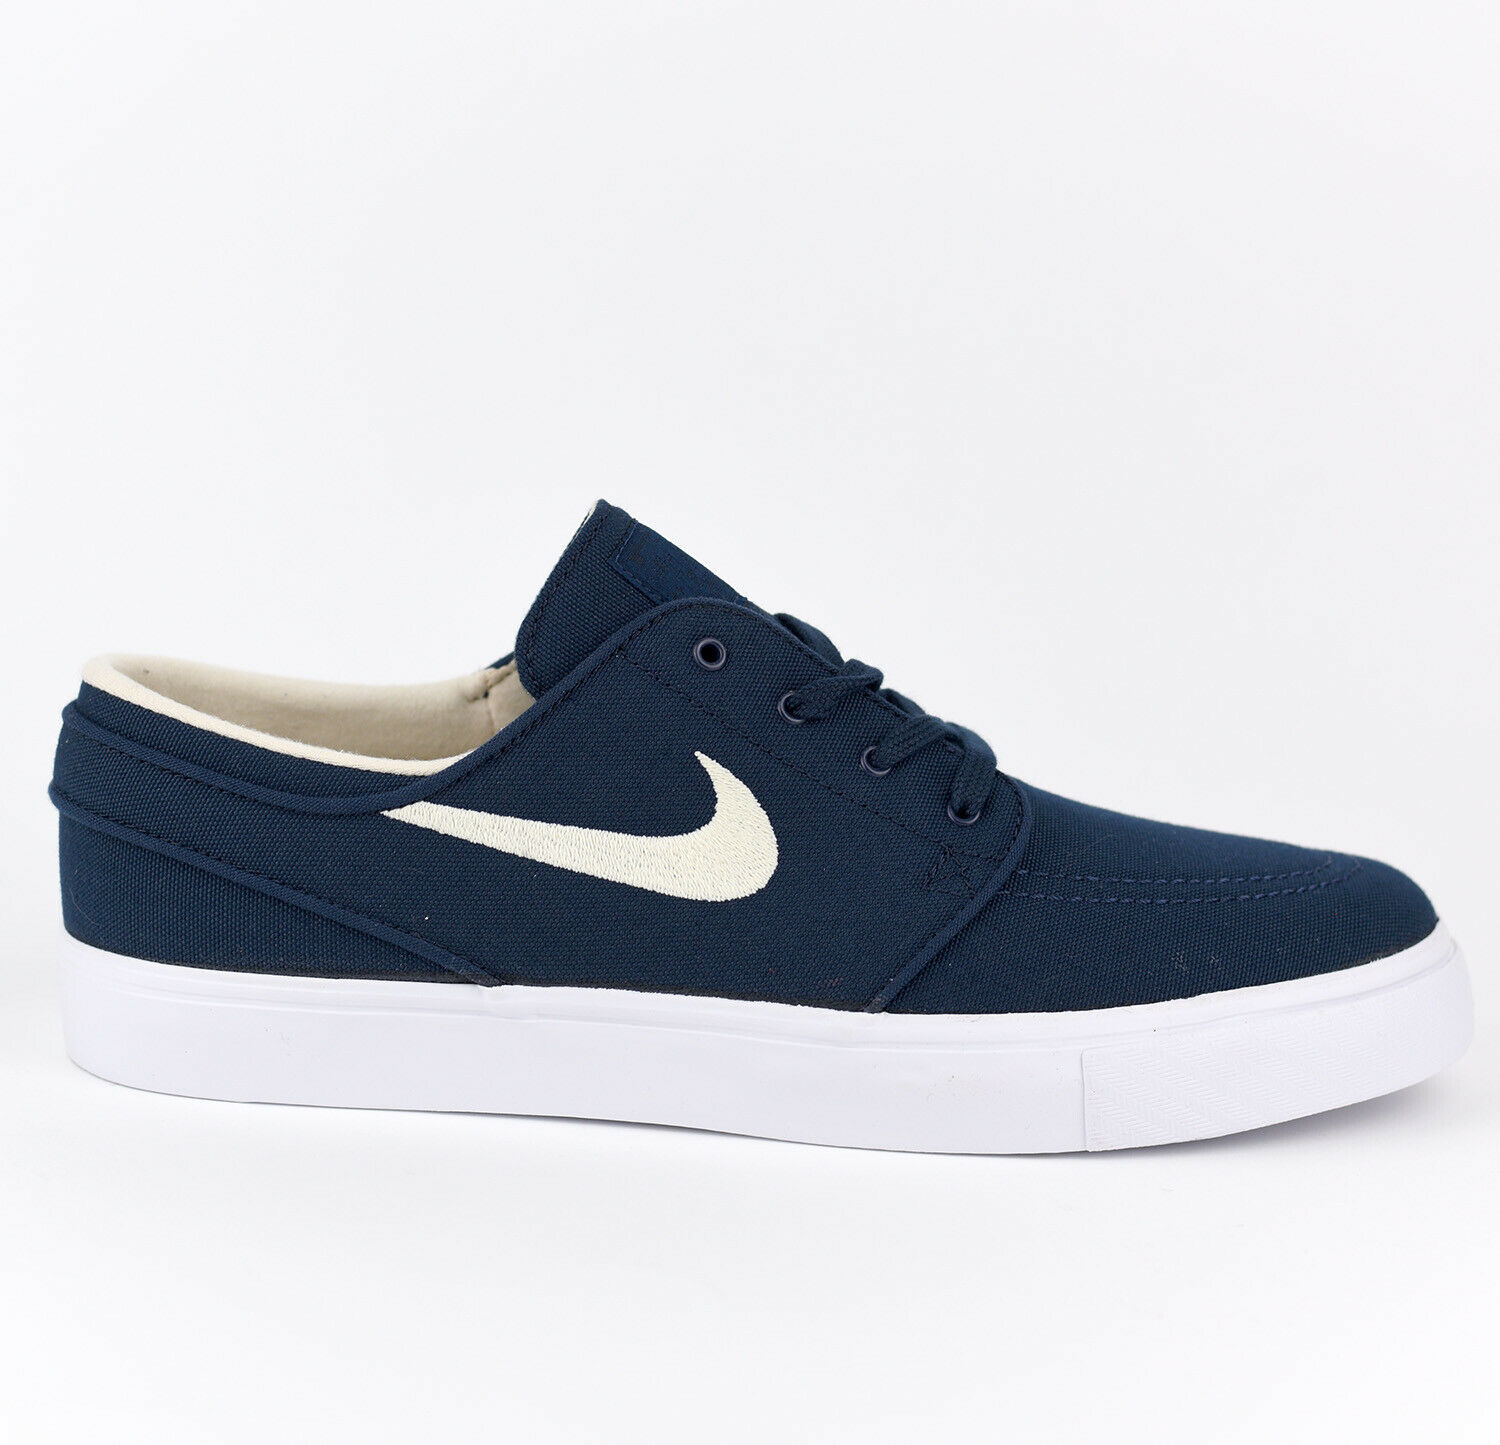 uk store hot sales cheap for sale NIKE ZOOM STEFAN JANOSKI CNVS 615957-440 Trainers Skate Shoe ...